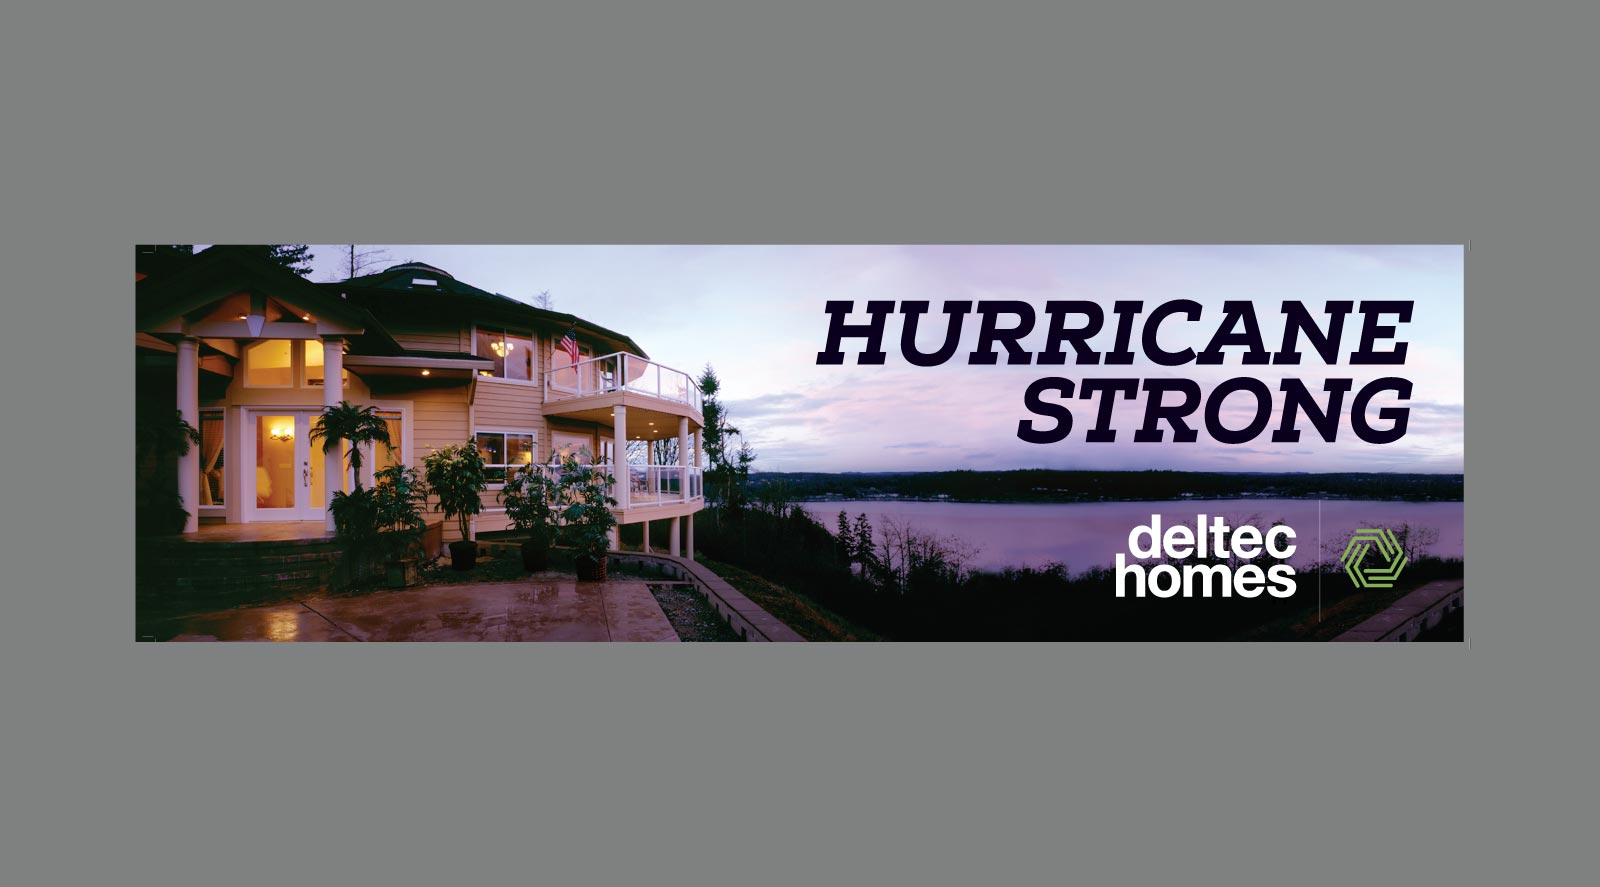 Deltec Homes billboard Advertisement for Hurricane strong design